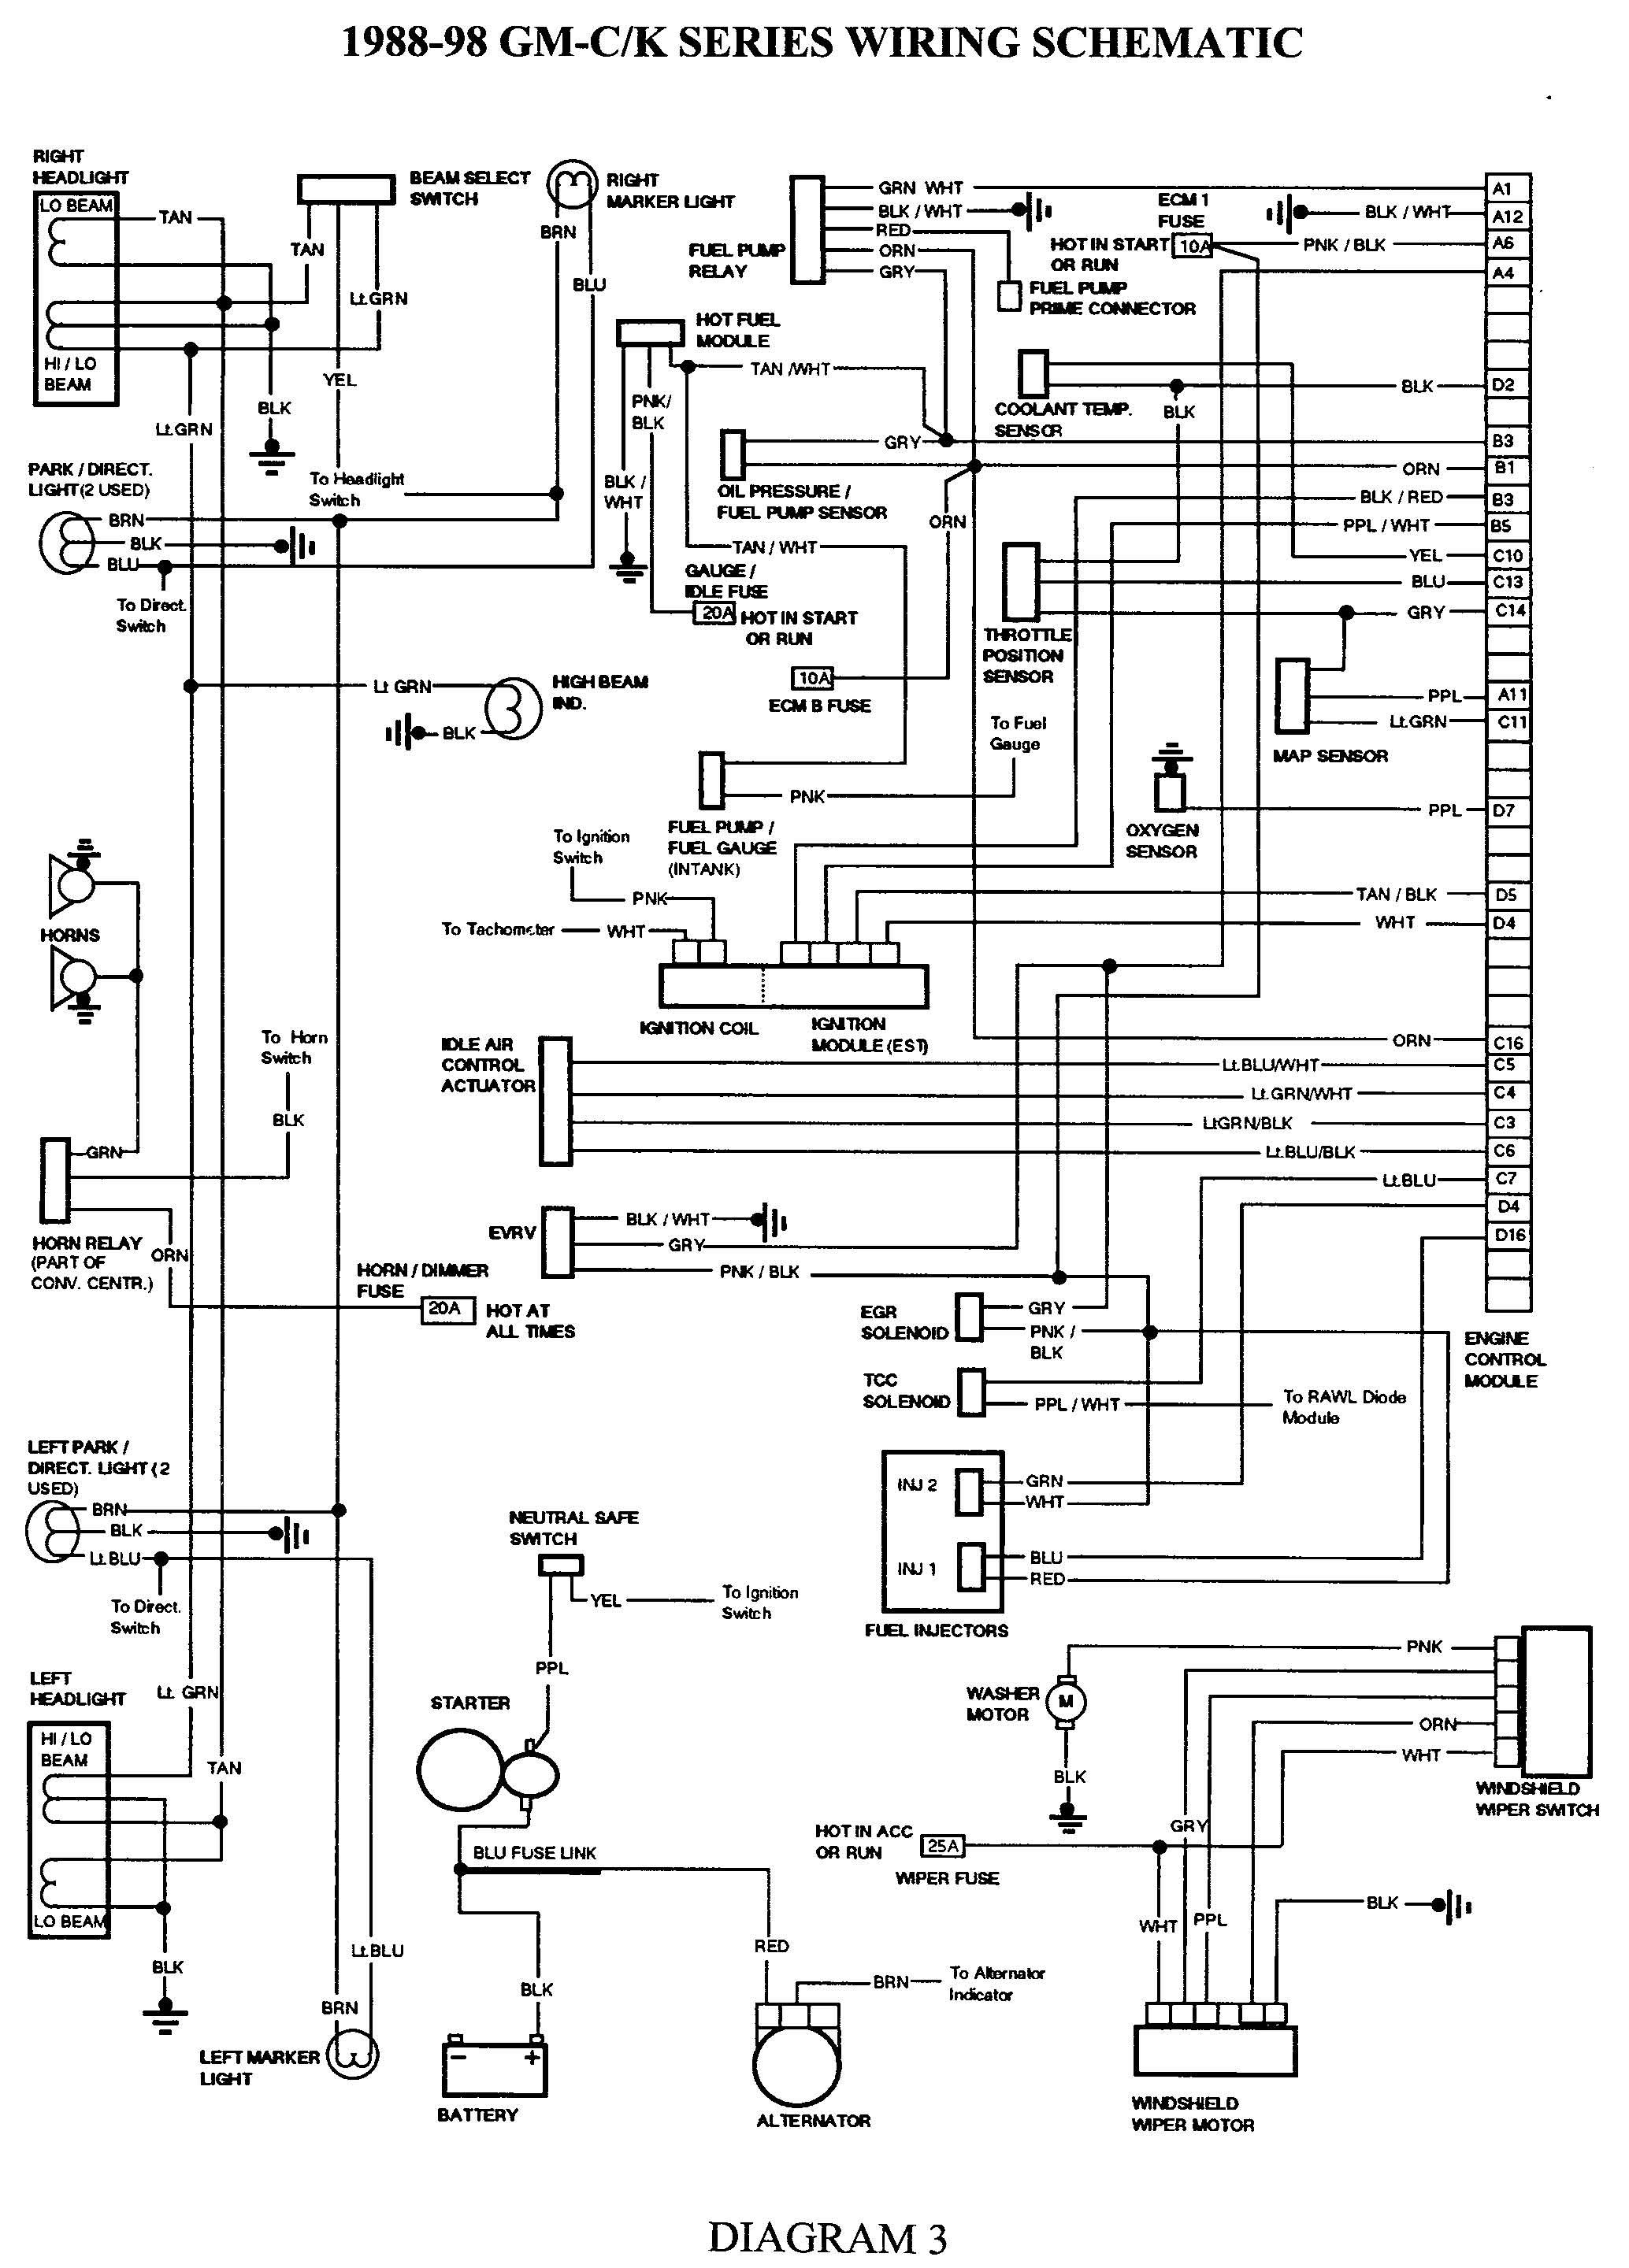 97 gmc wiring harness diagram 1217asyaunitedde